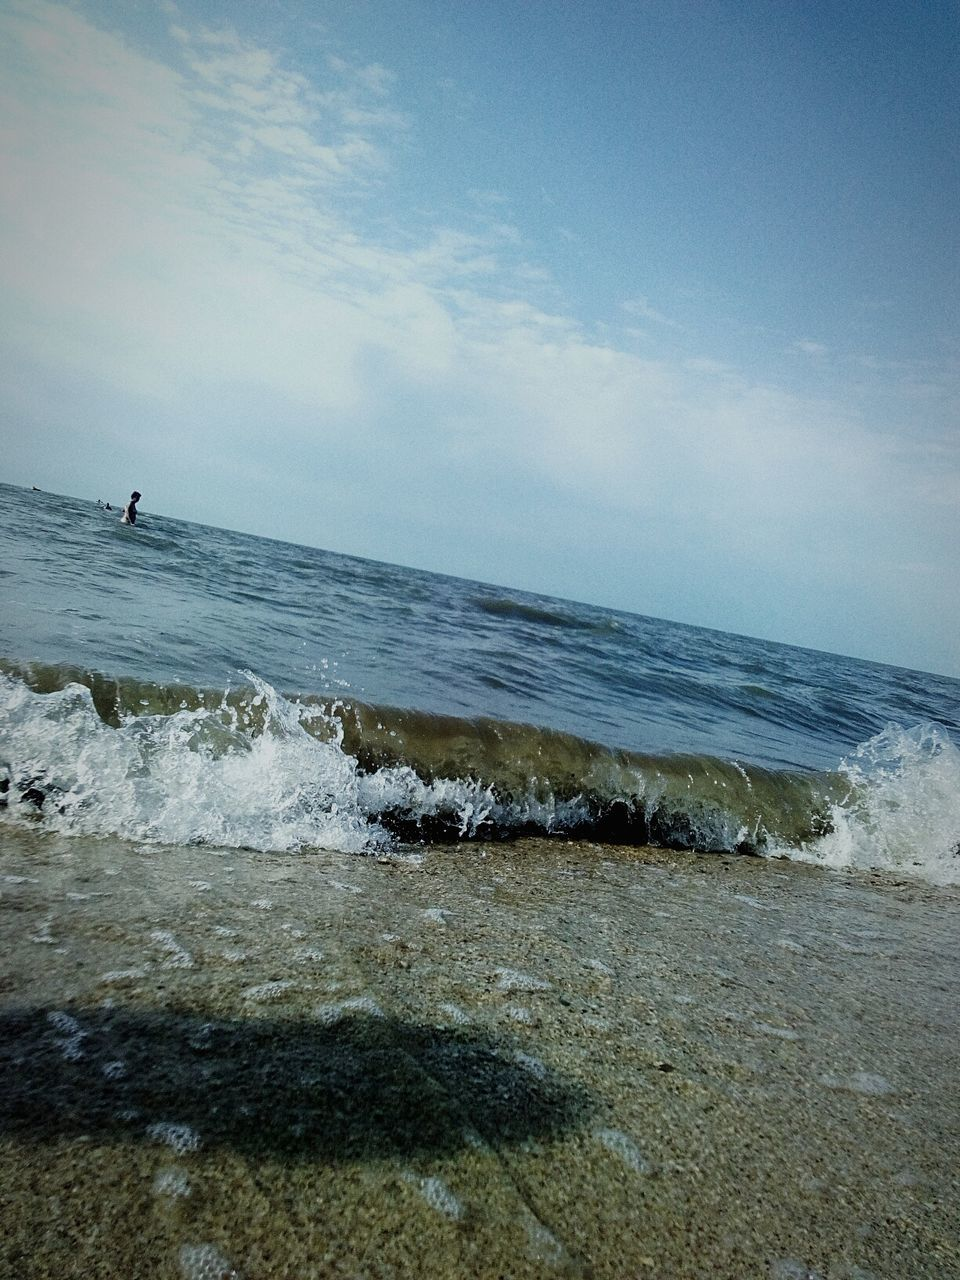 sea, water, horizon over water, nature, beach, sky, scenics, beauty in nature, wave, outdoors, tranquil scene, tranquility, day, one person, standing, real people, people